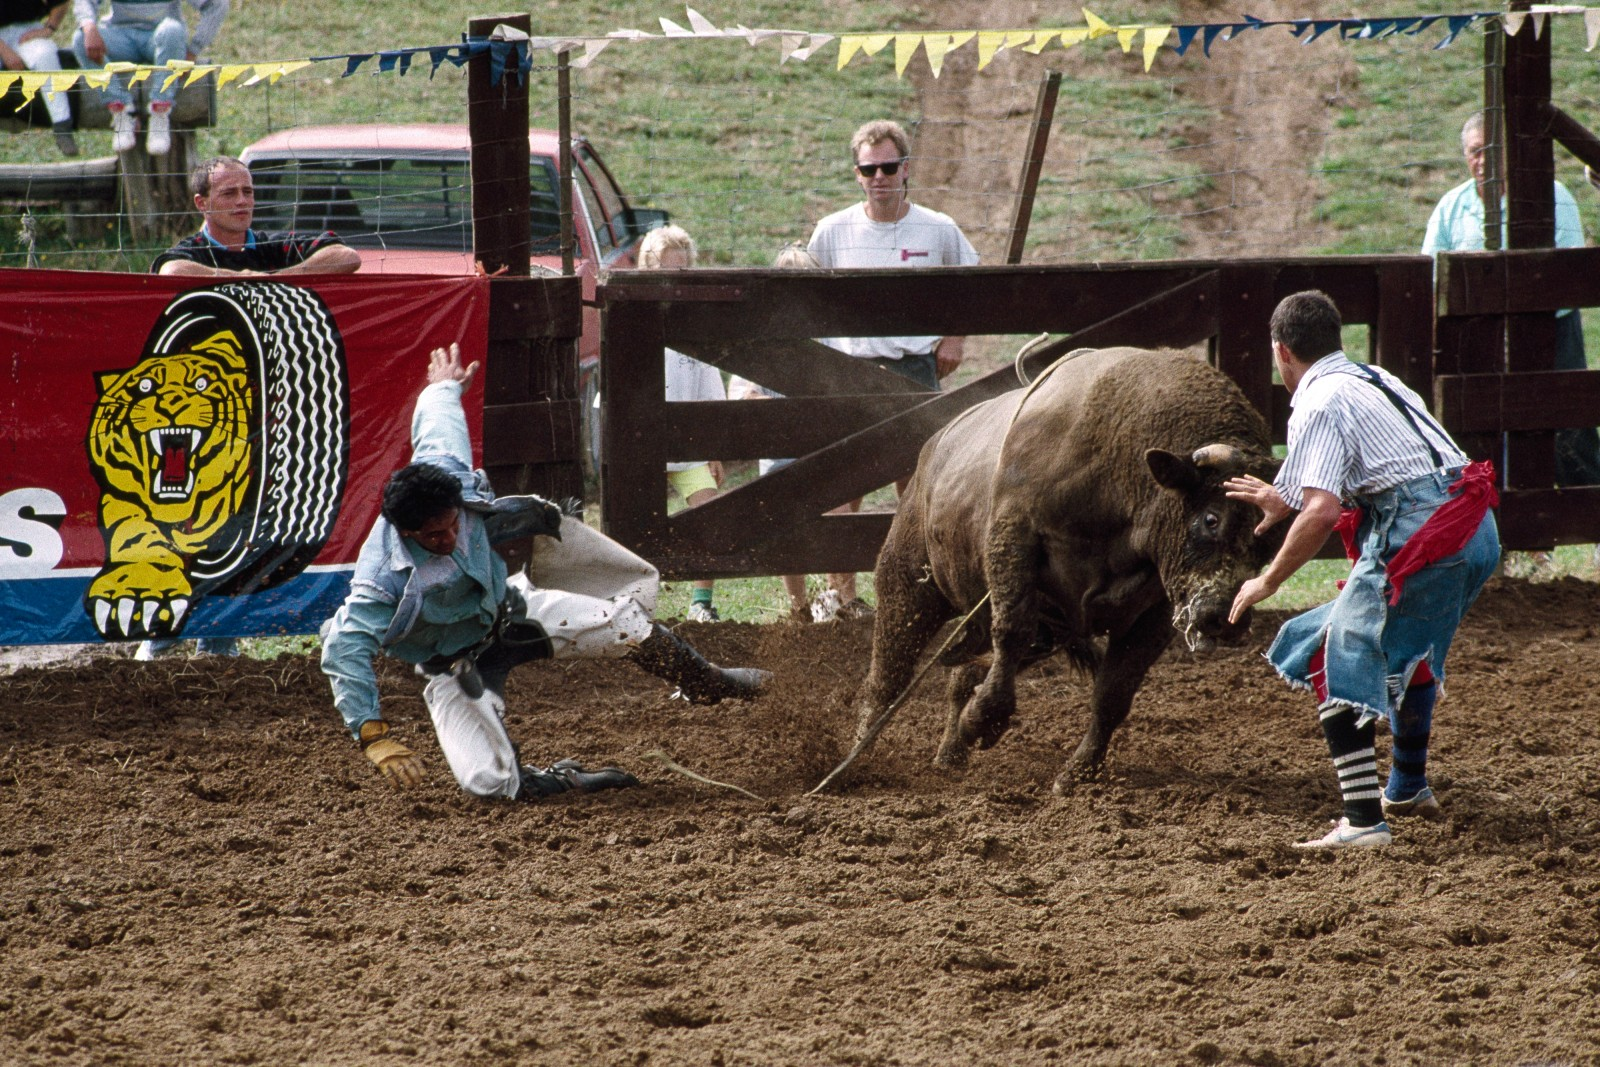 """A cowboy can get real sick, real quick out there,"" says bullfighter Paul Brown. His job-the most dangerous in the rodeo-is to rescue cowboys who have become entangled with the bull, cut them loose and divert the bull while the rider gets away. Bullfighters are dressed and made up like clowns to attract the attention of the bull, but their business is no laughing matter. Says Brown, ""You've got to show the bull who's boss."""